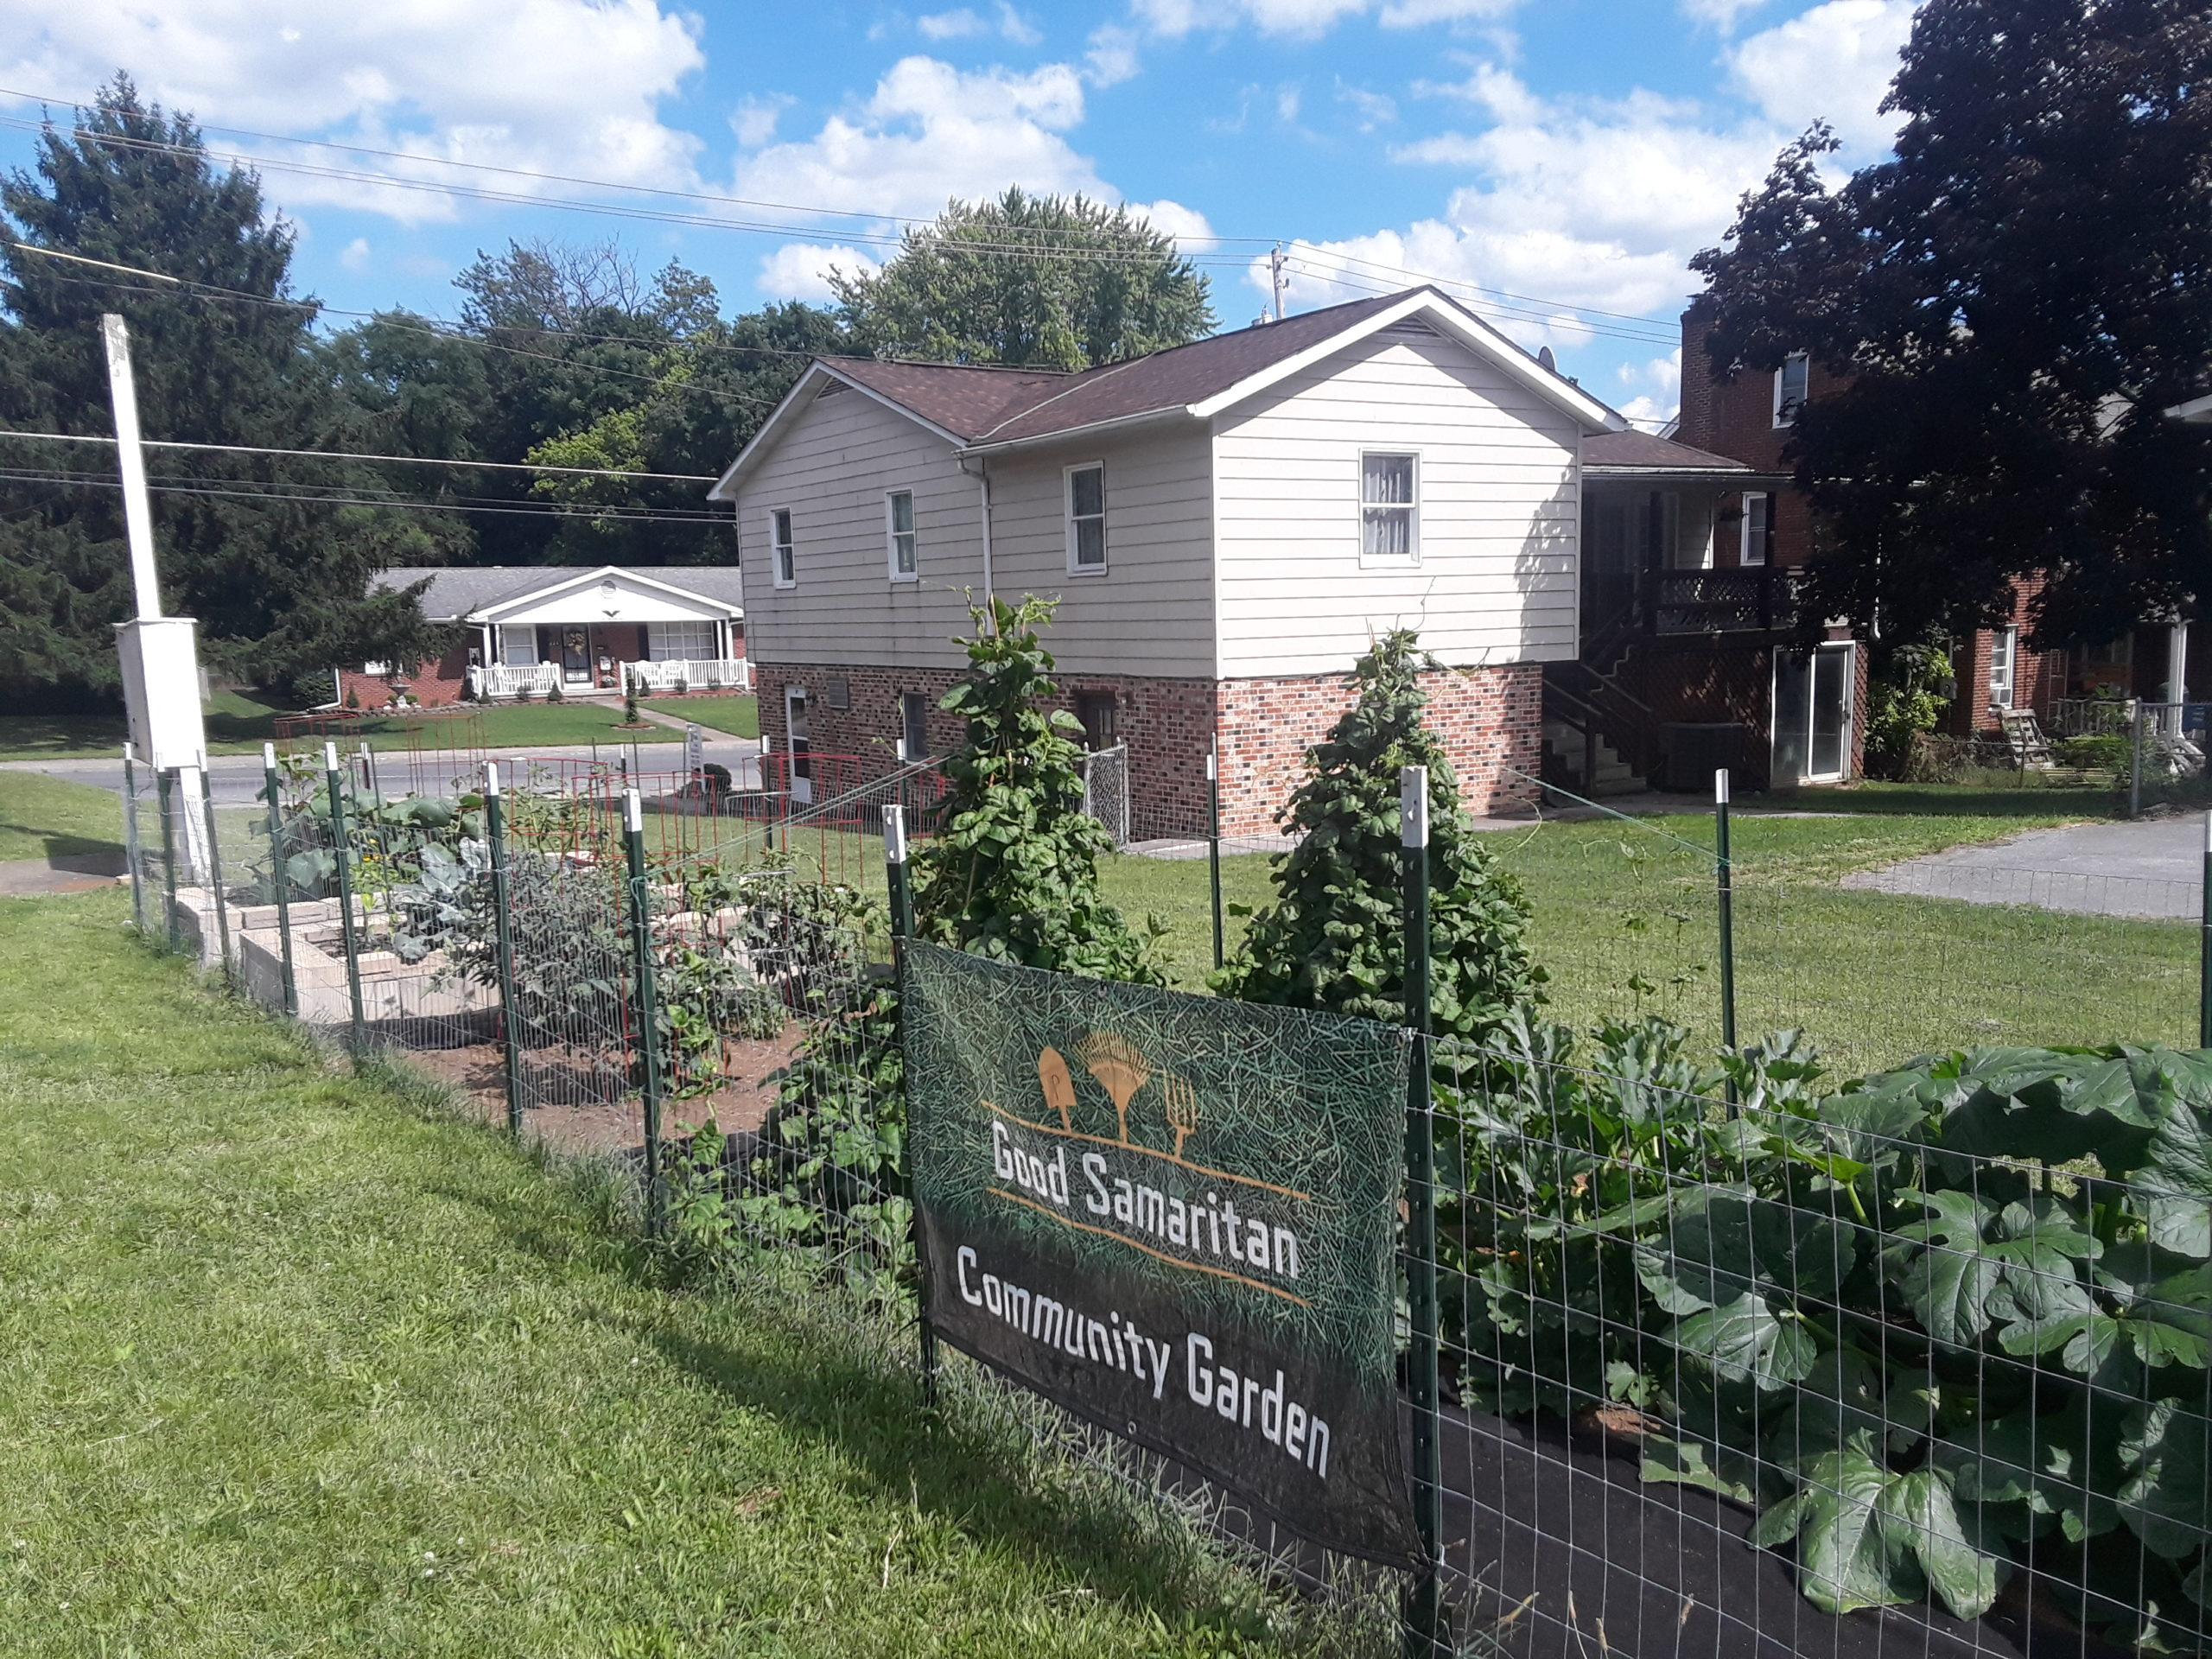 Good Samaritan Community Garden